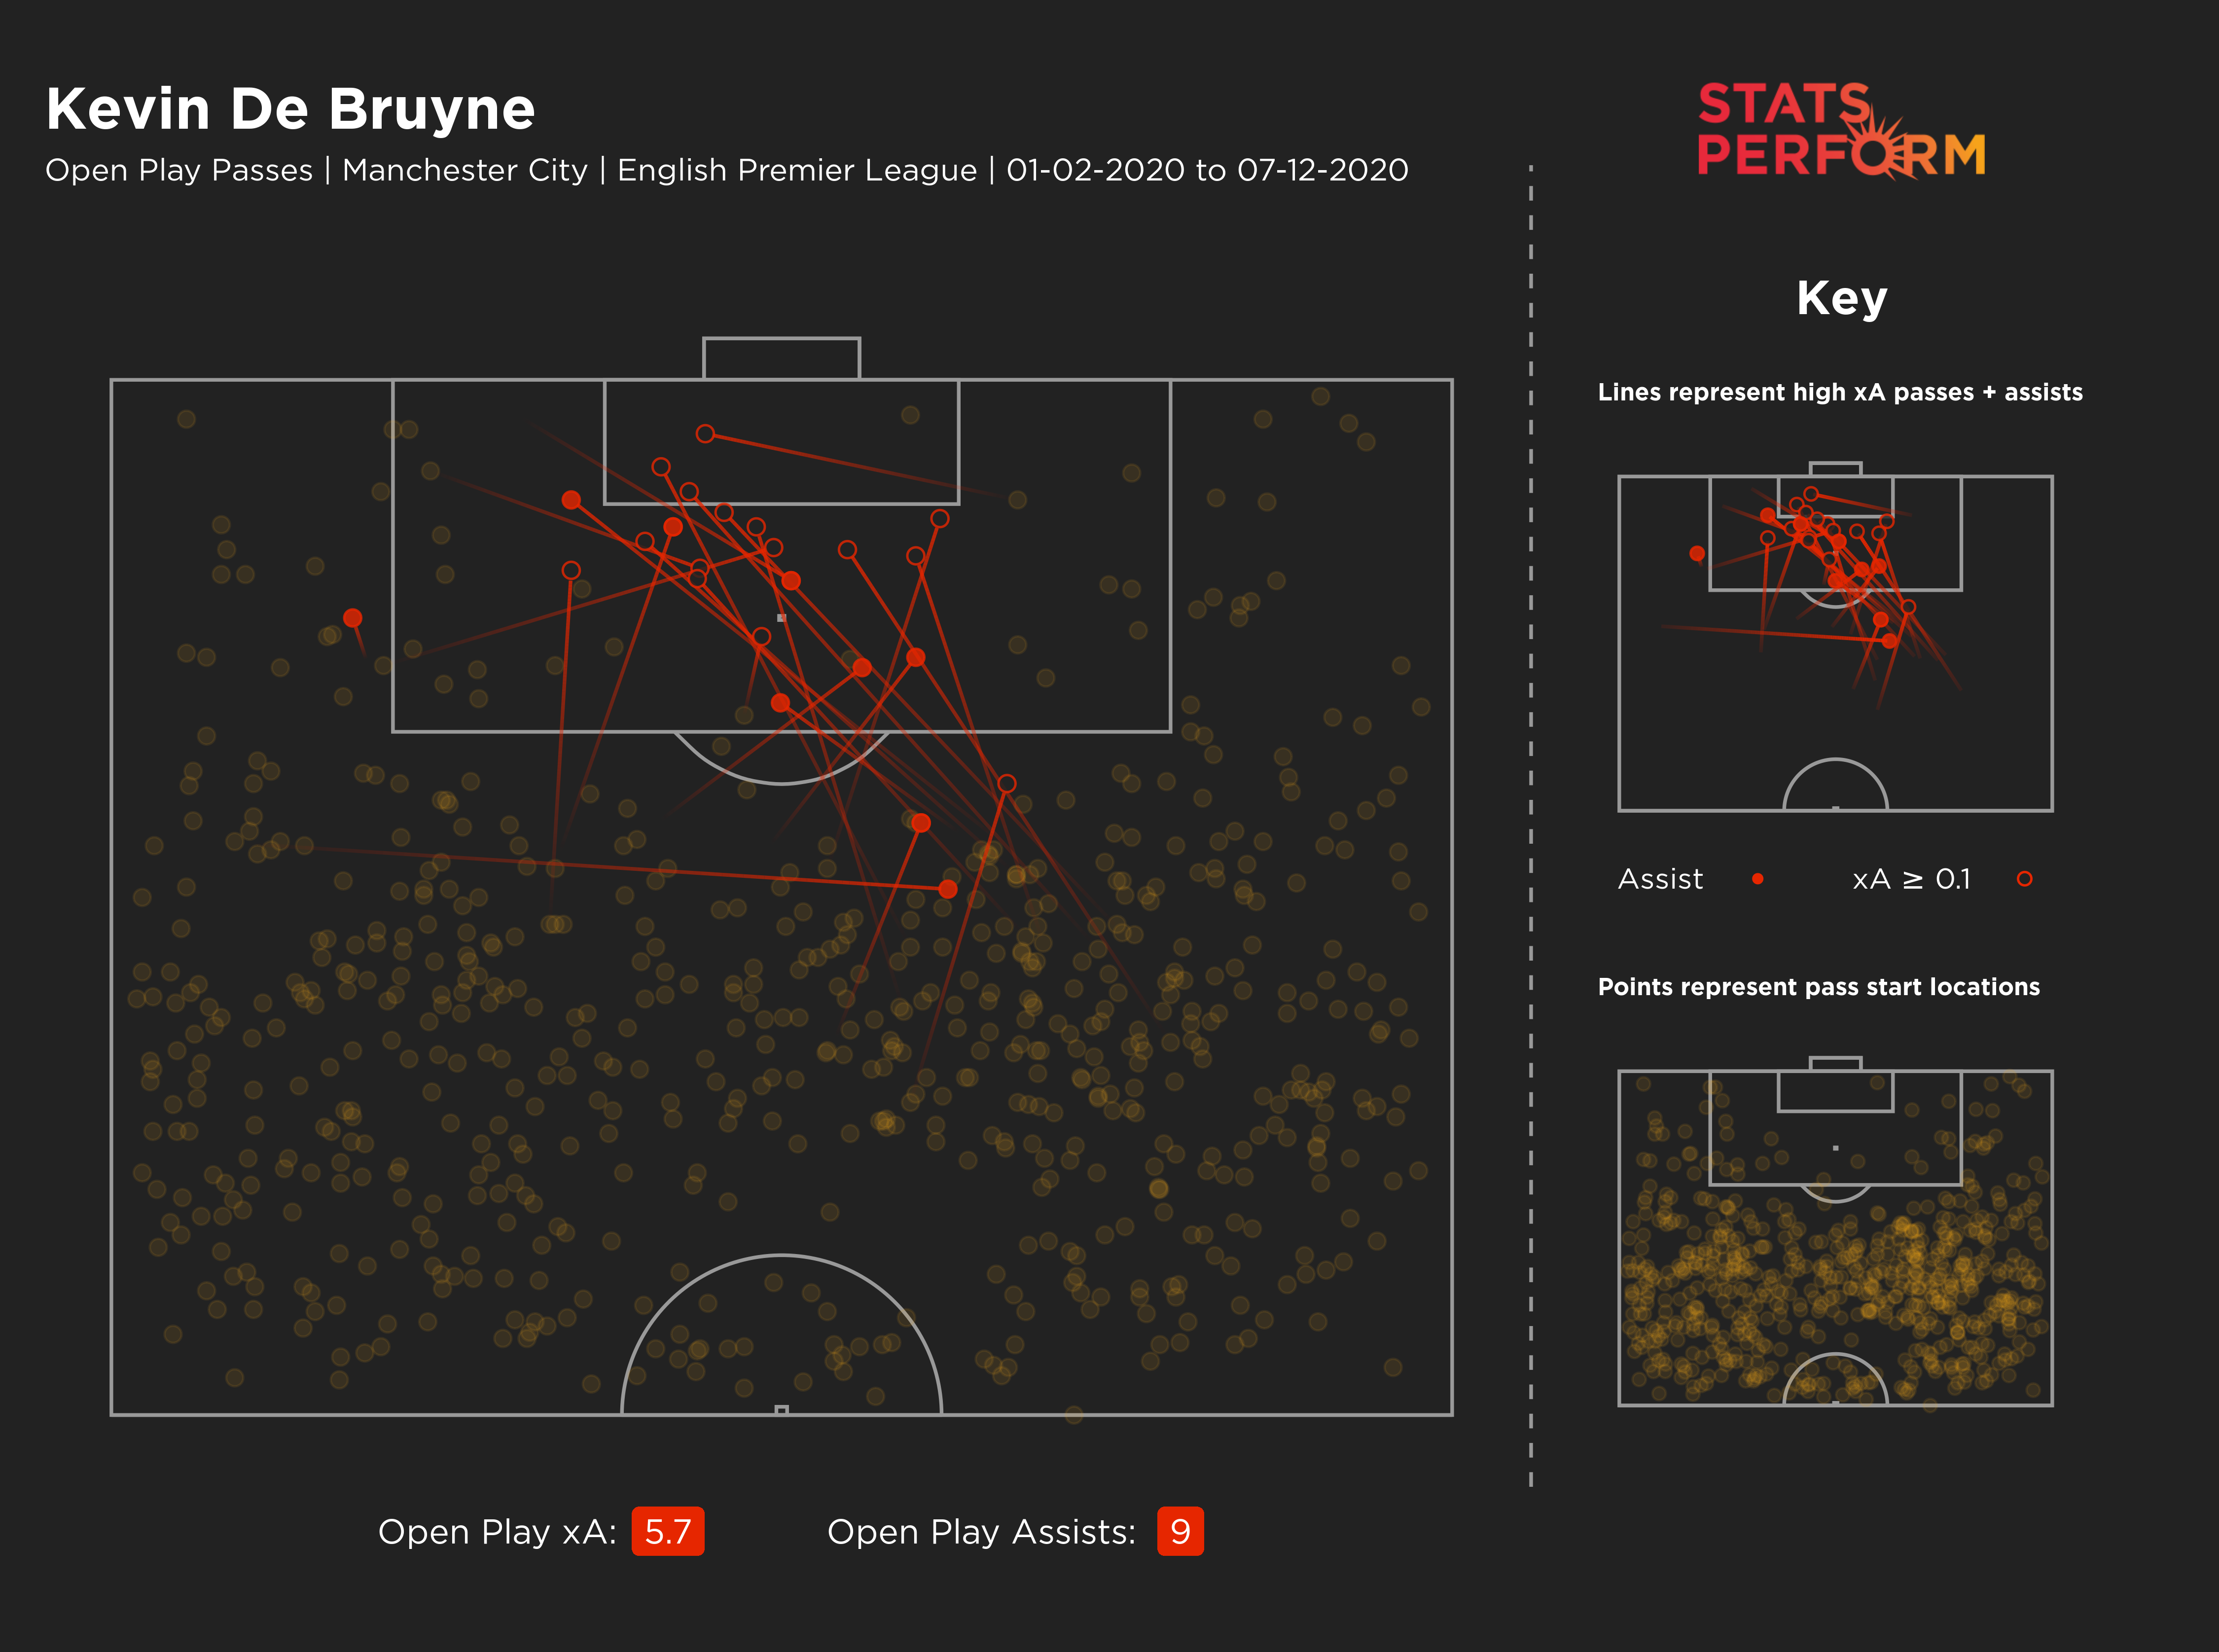 Kevin De Bruyne's expected assists map